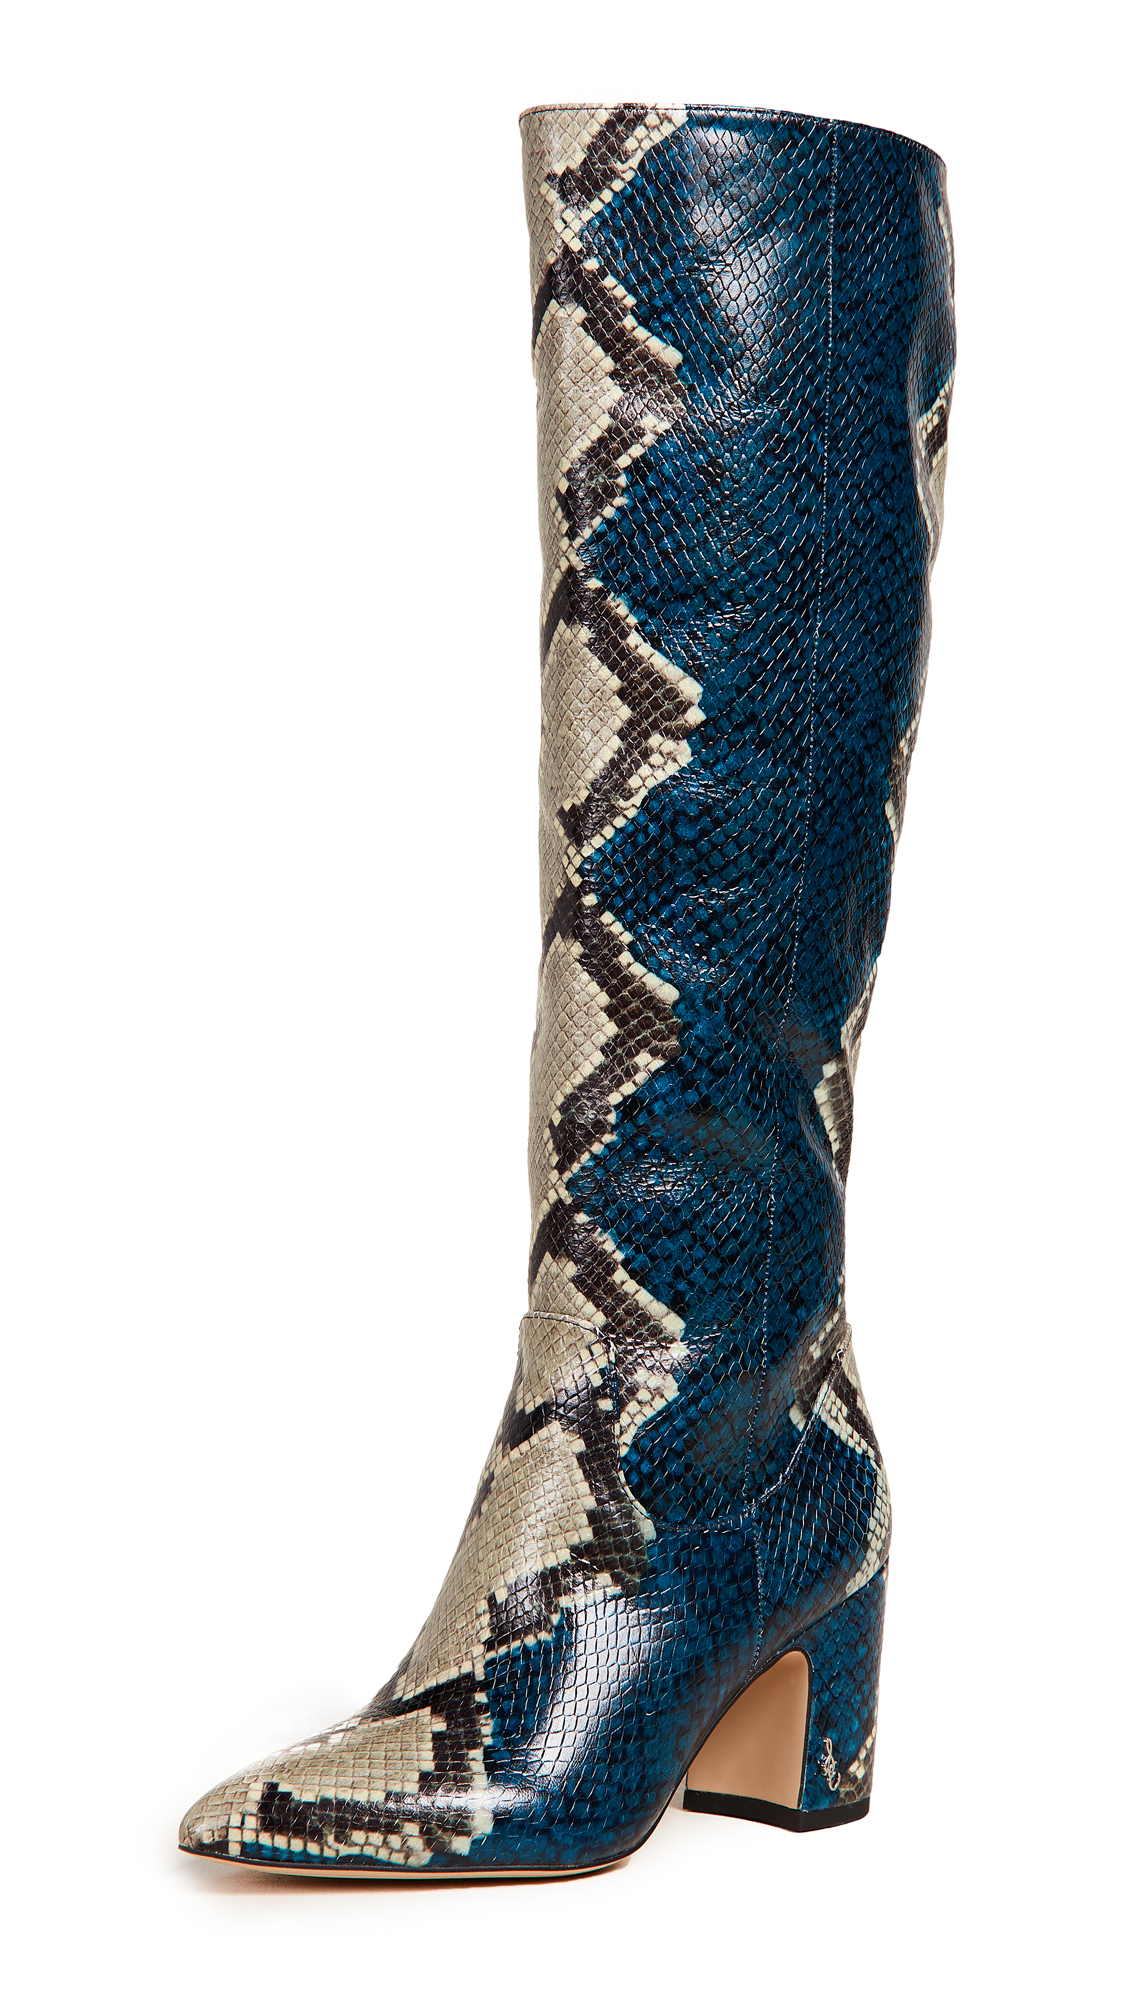 Sam Edelman Hai Tall Boots - Peacock Blue Multi